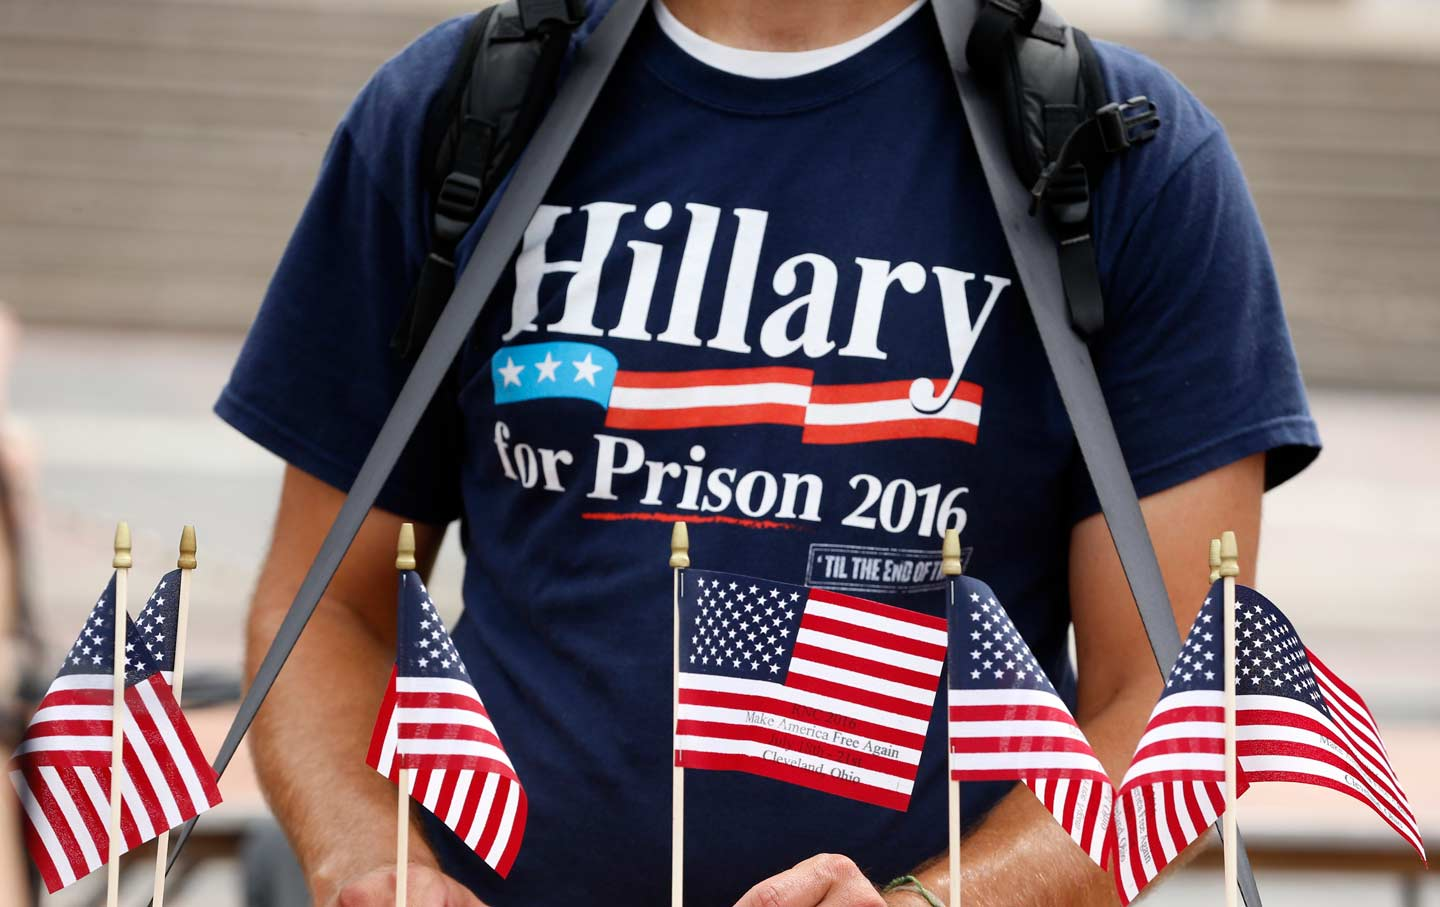 Hillary for Prison RNC T-Shirt